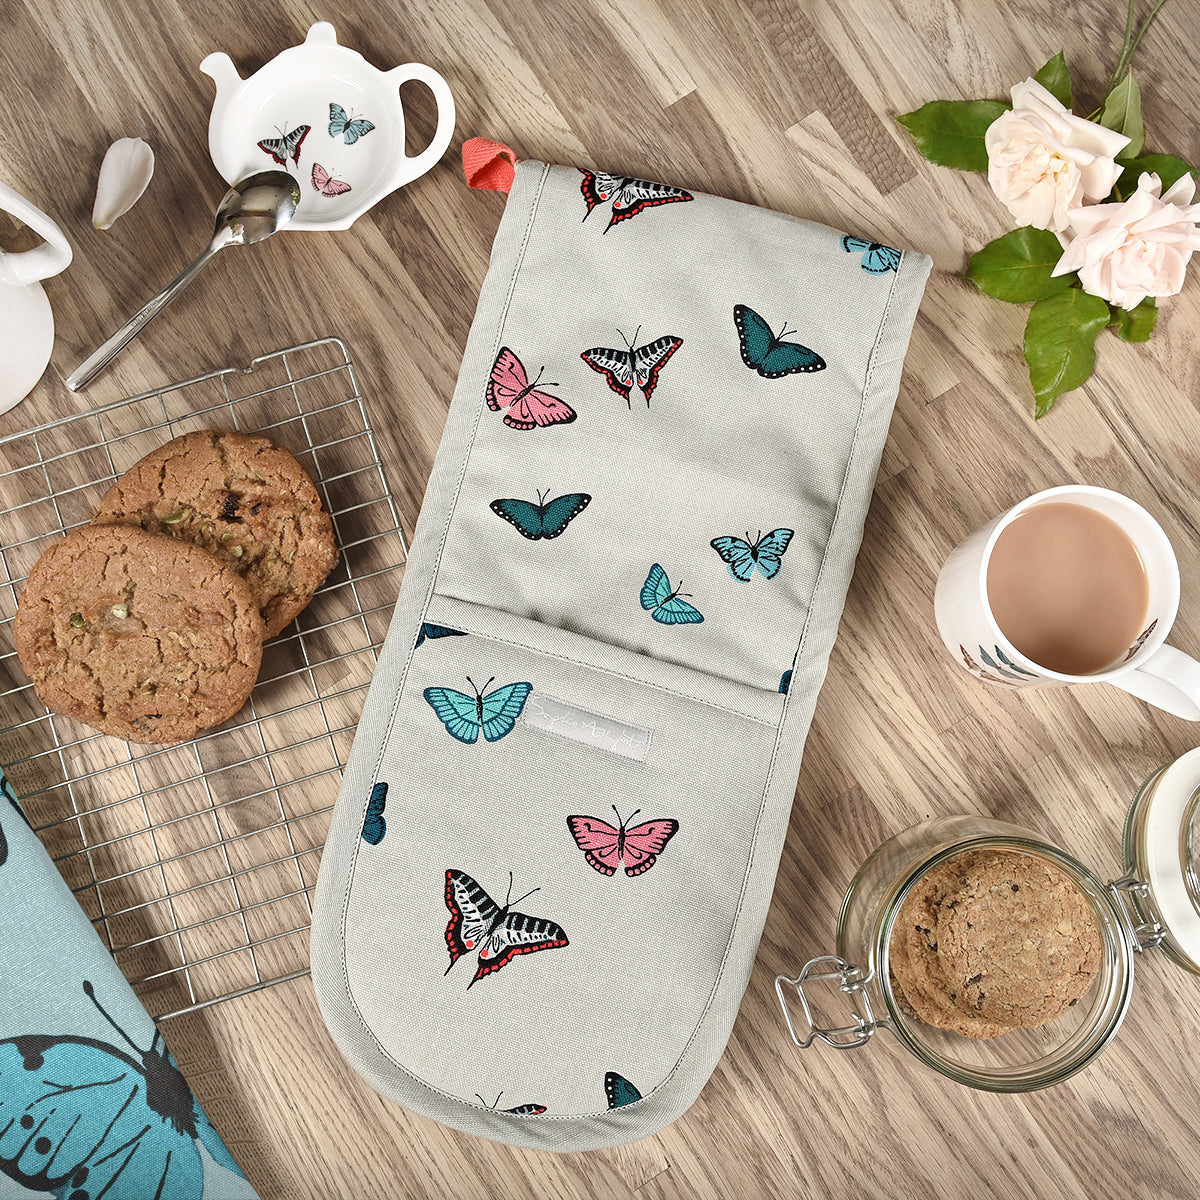 Butterflies Oven Gloves by Sophie Allport